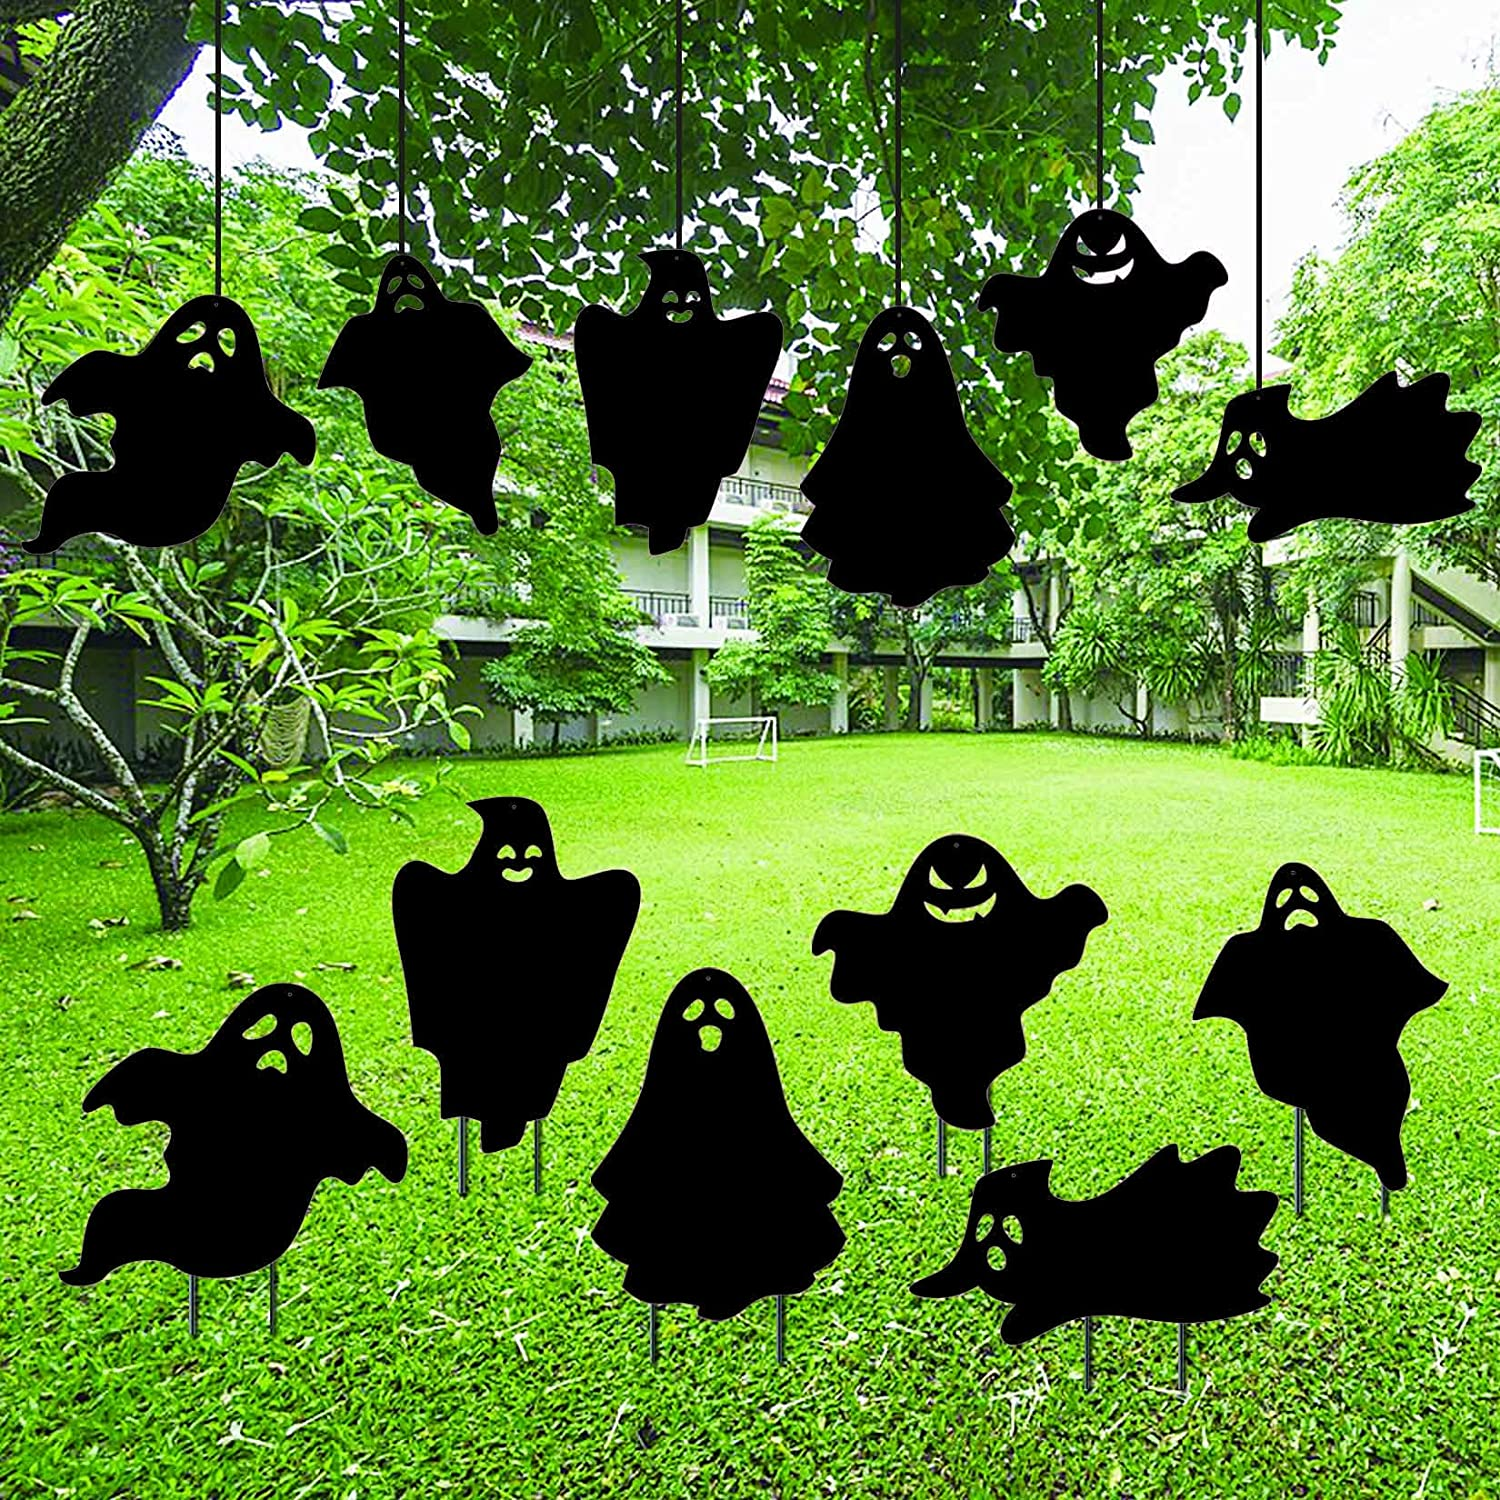 Halloween Ghost Yard Decorations,Outdoor Halloween Party Decorations,6Pcs Halloween Party Yard Signs for Haunted Houses,Halloween Ghost Weatherproof Black Plastic Yard Stake,Spooky Party Supplies.